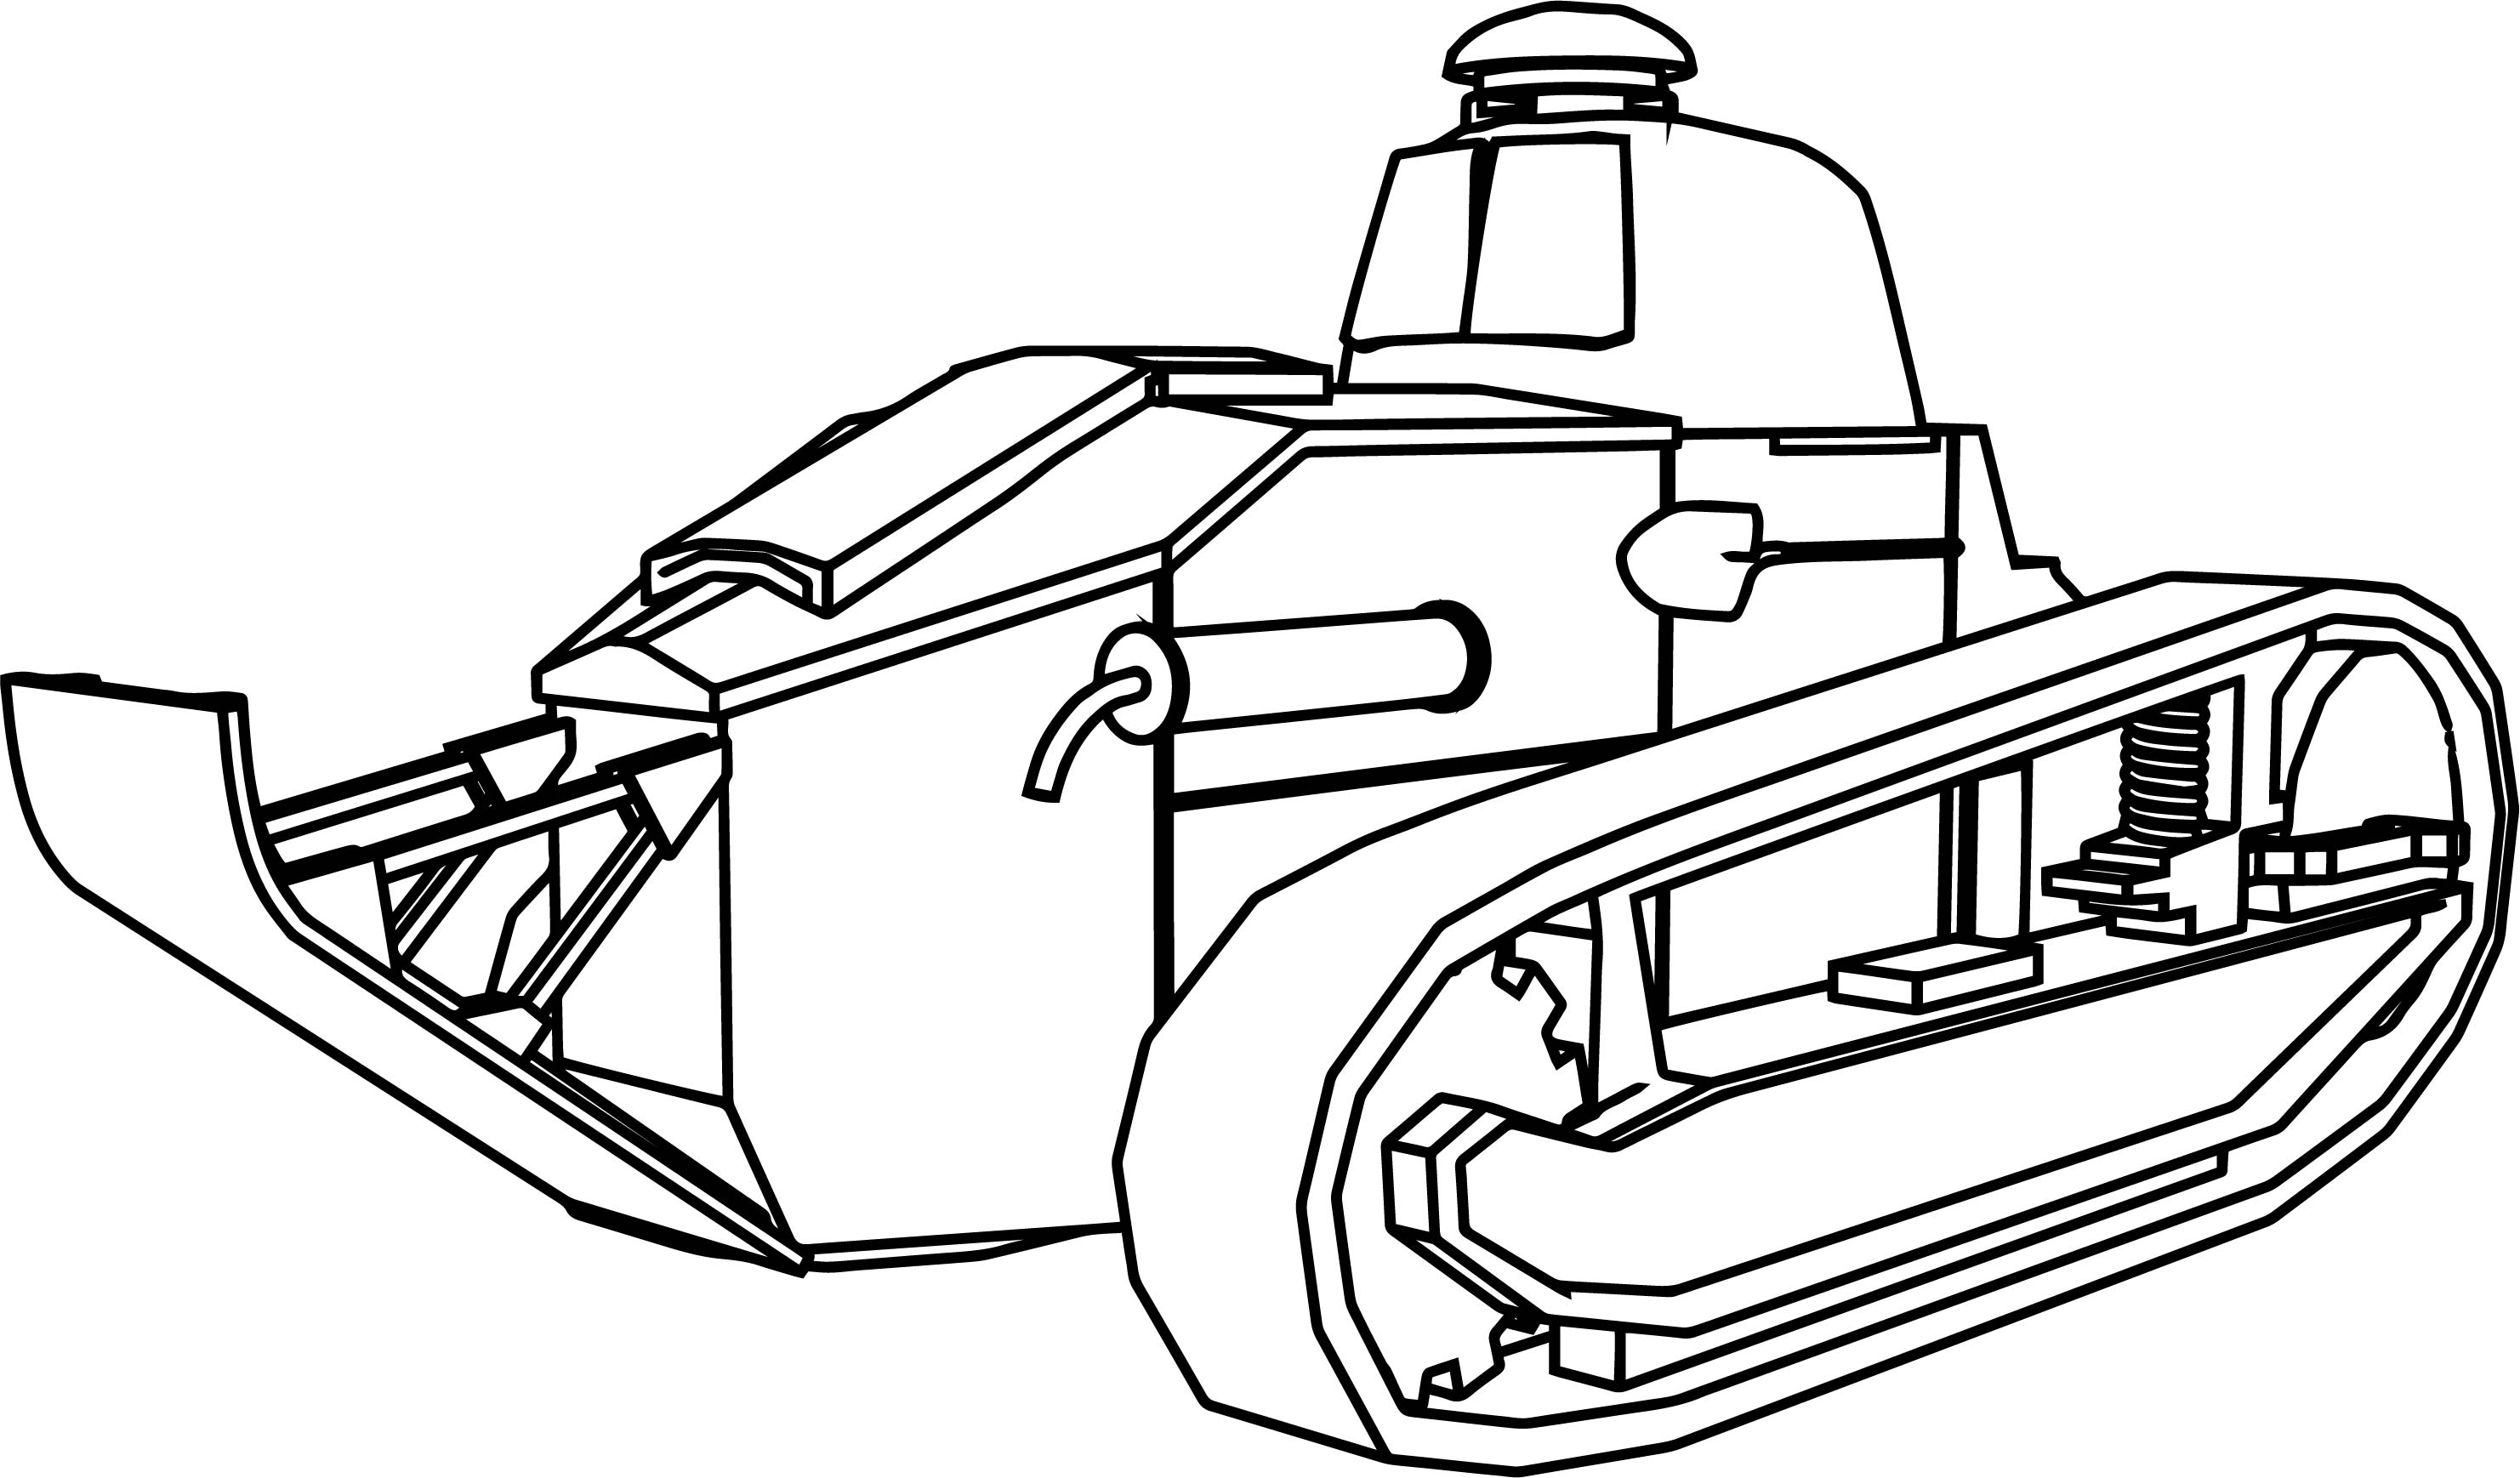 Ft17 ber military tank coloring page for Tank coloring page